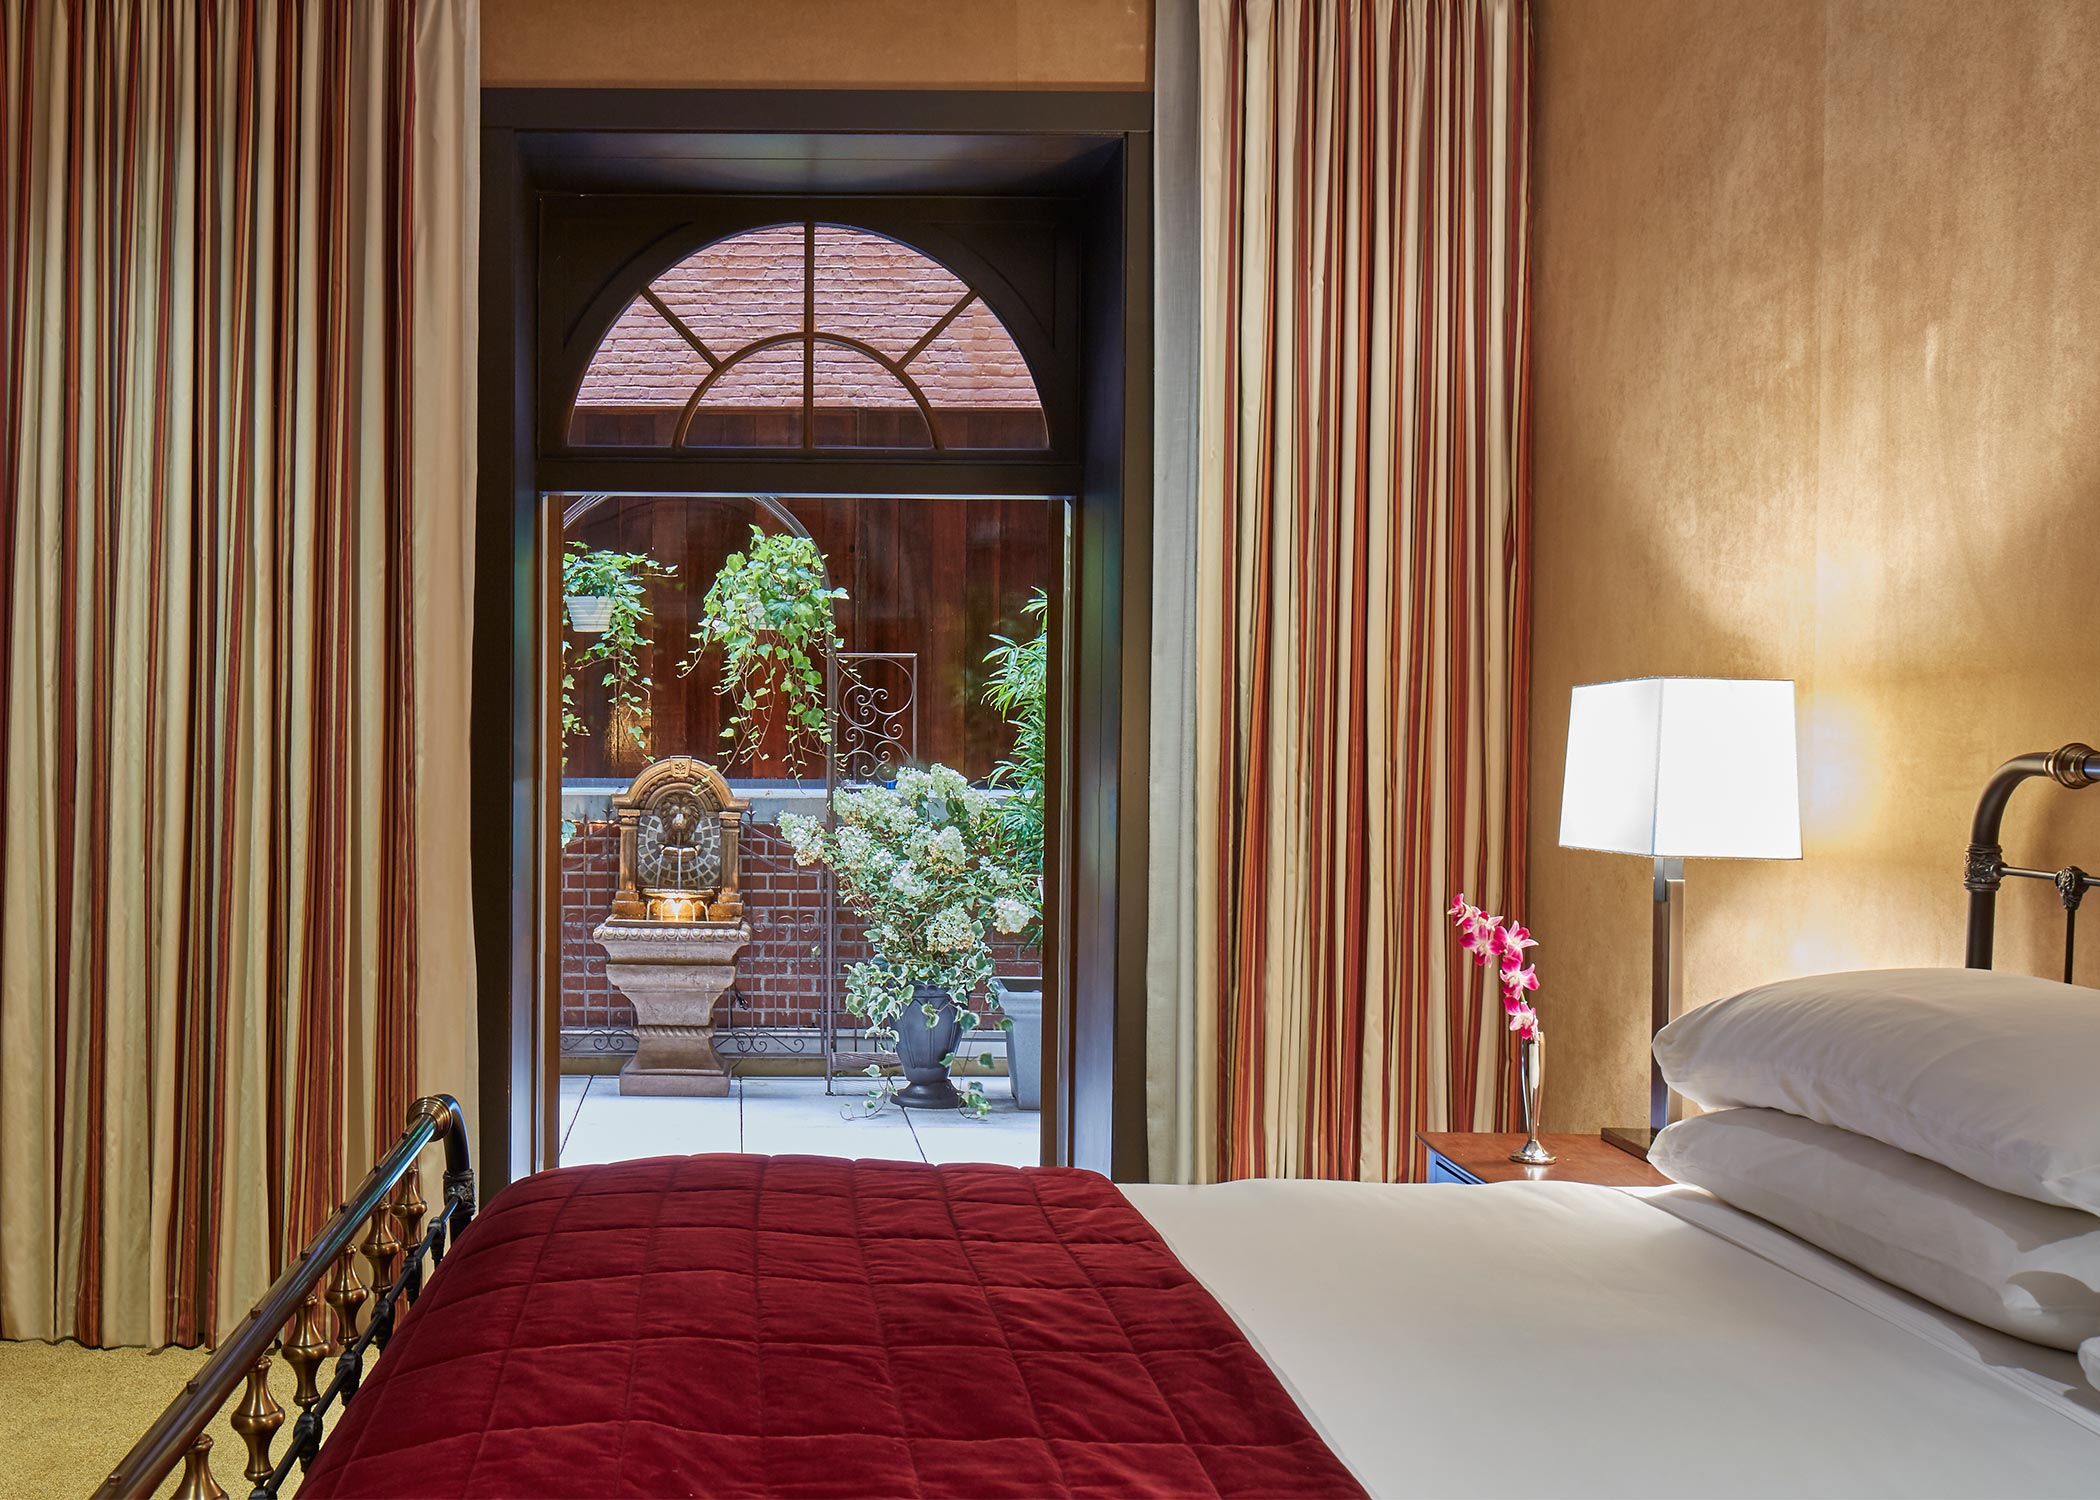 luxurious hotel suite bedroom with golden walls and door opened to outdoor terrace with plants